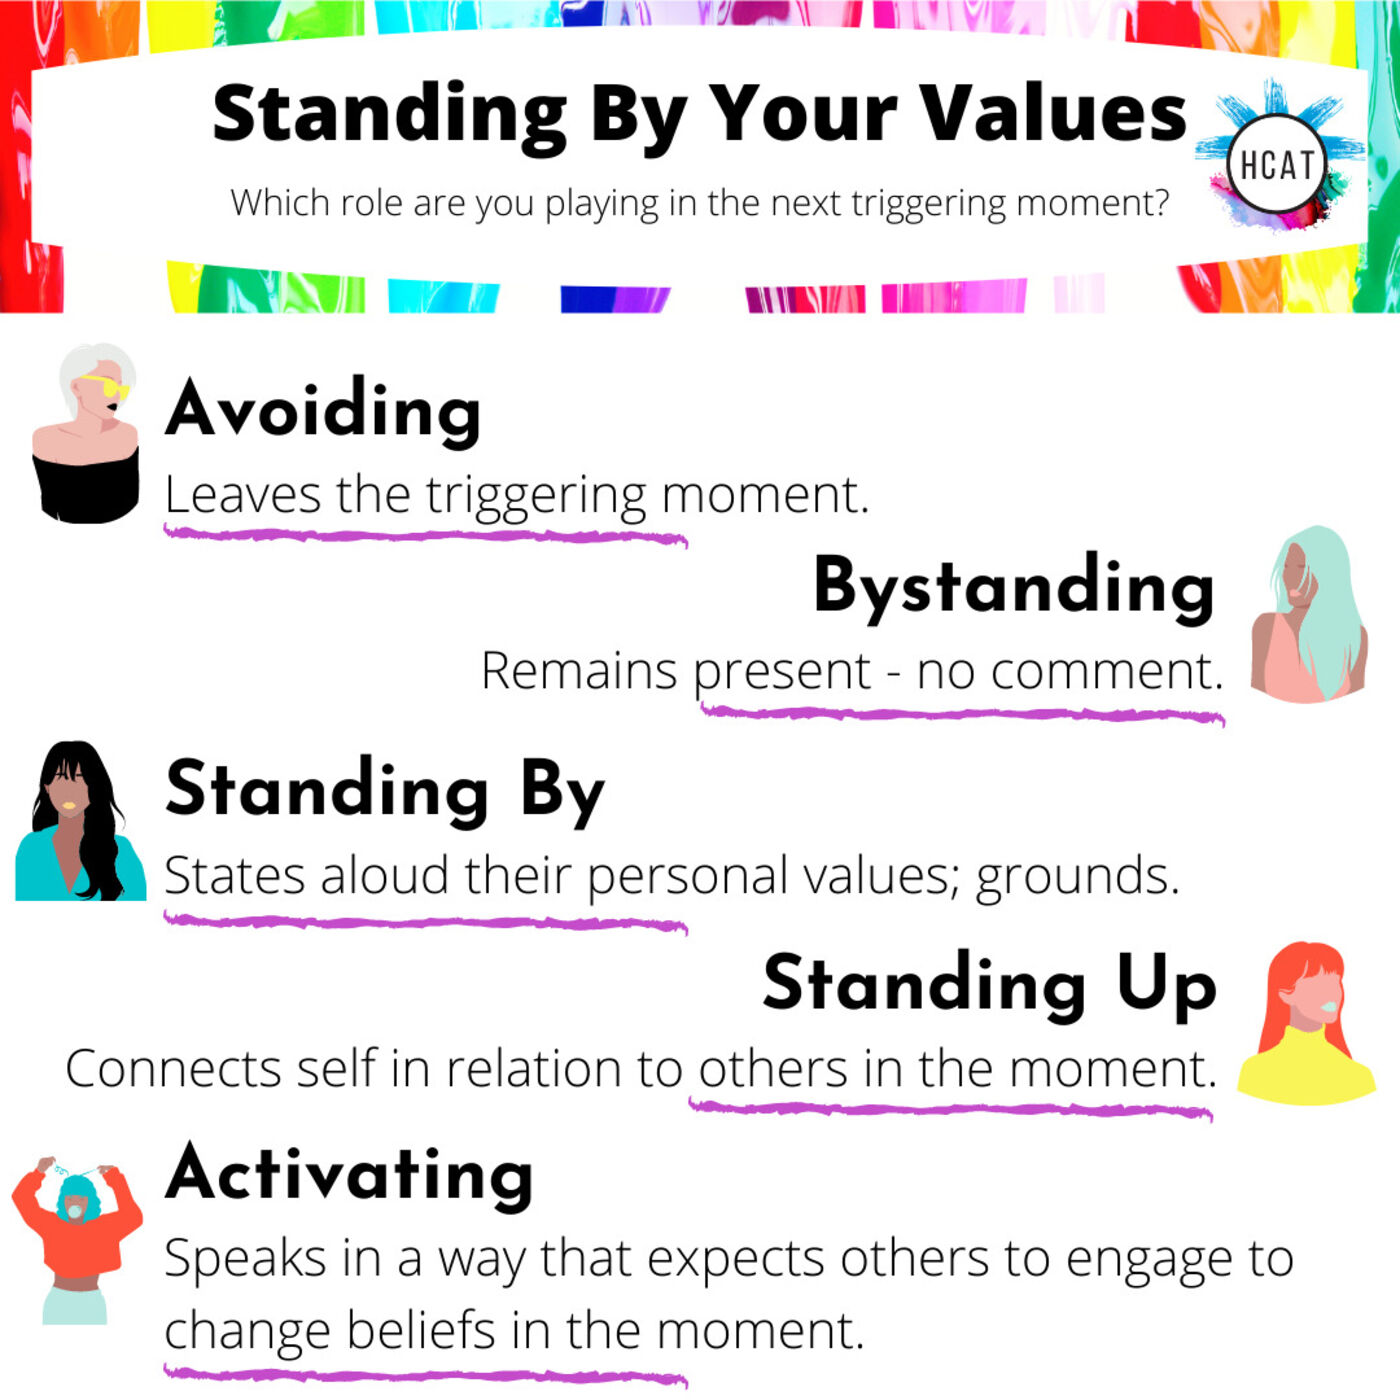 Standing By Your Values: A Continuum